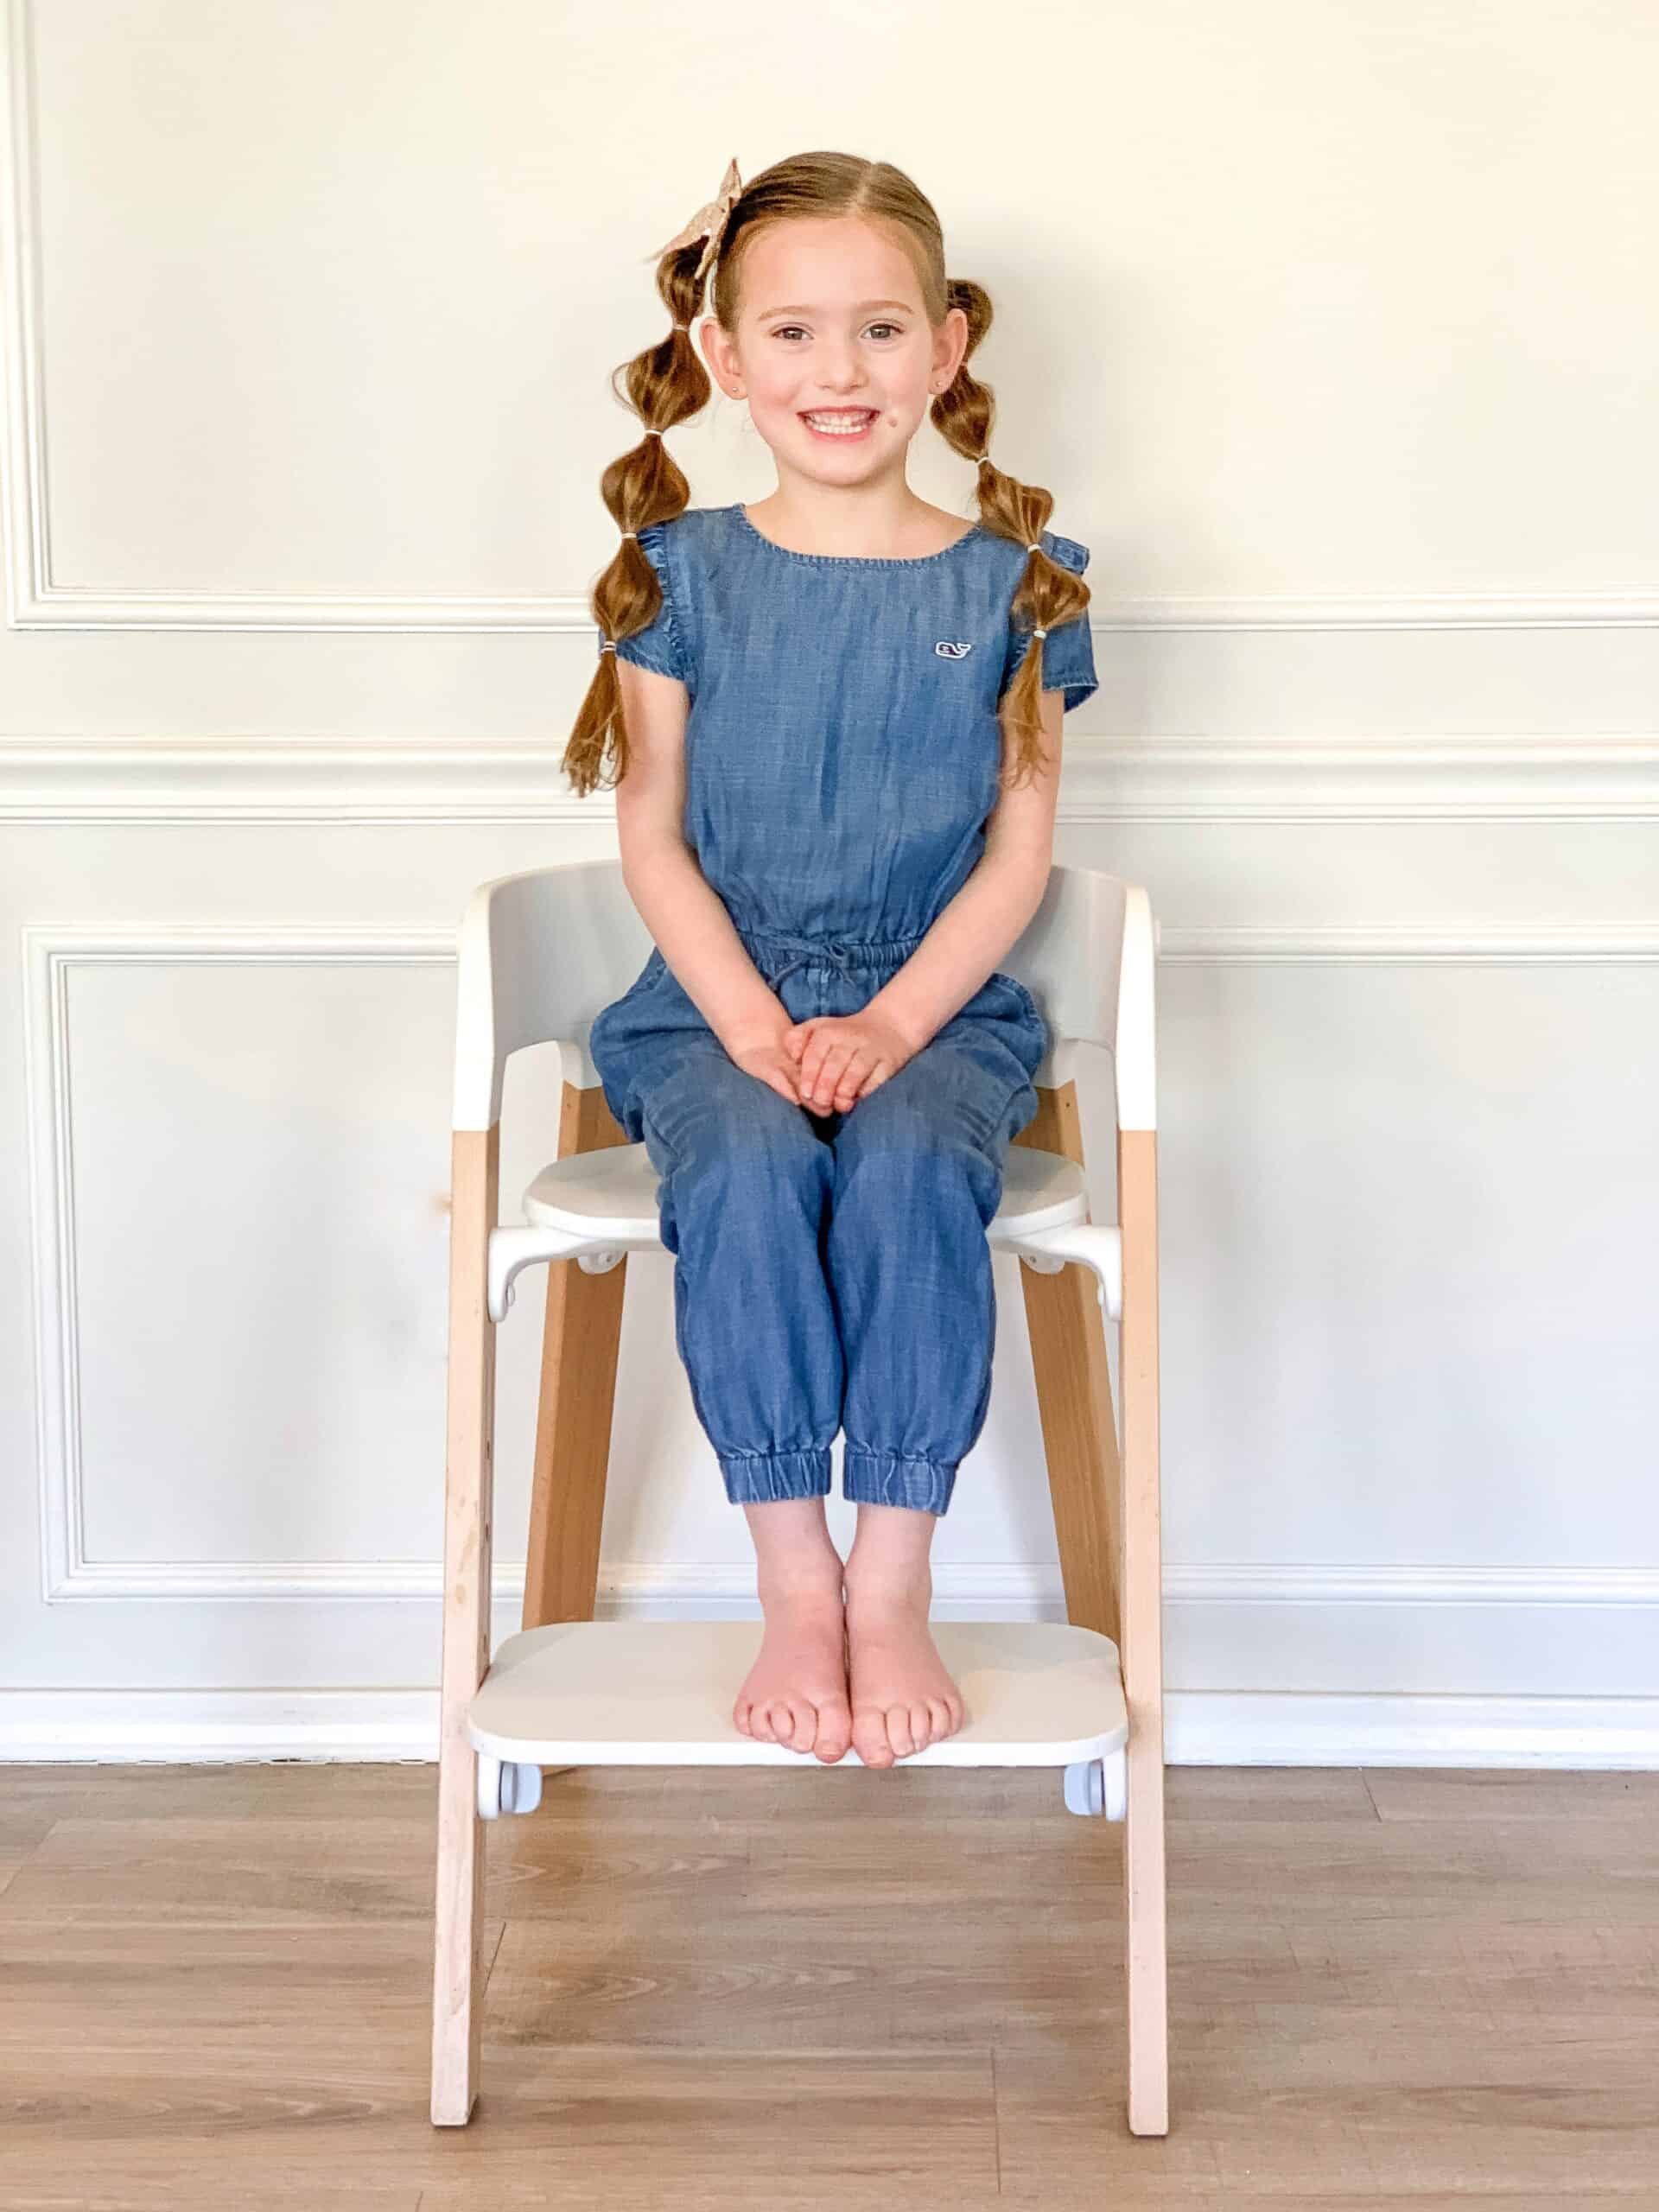 5 year old on Stokke Steps Chair